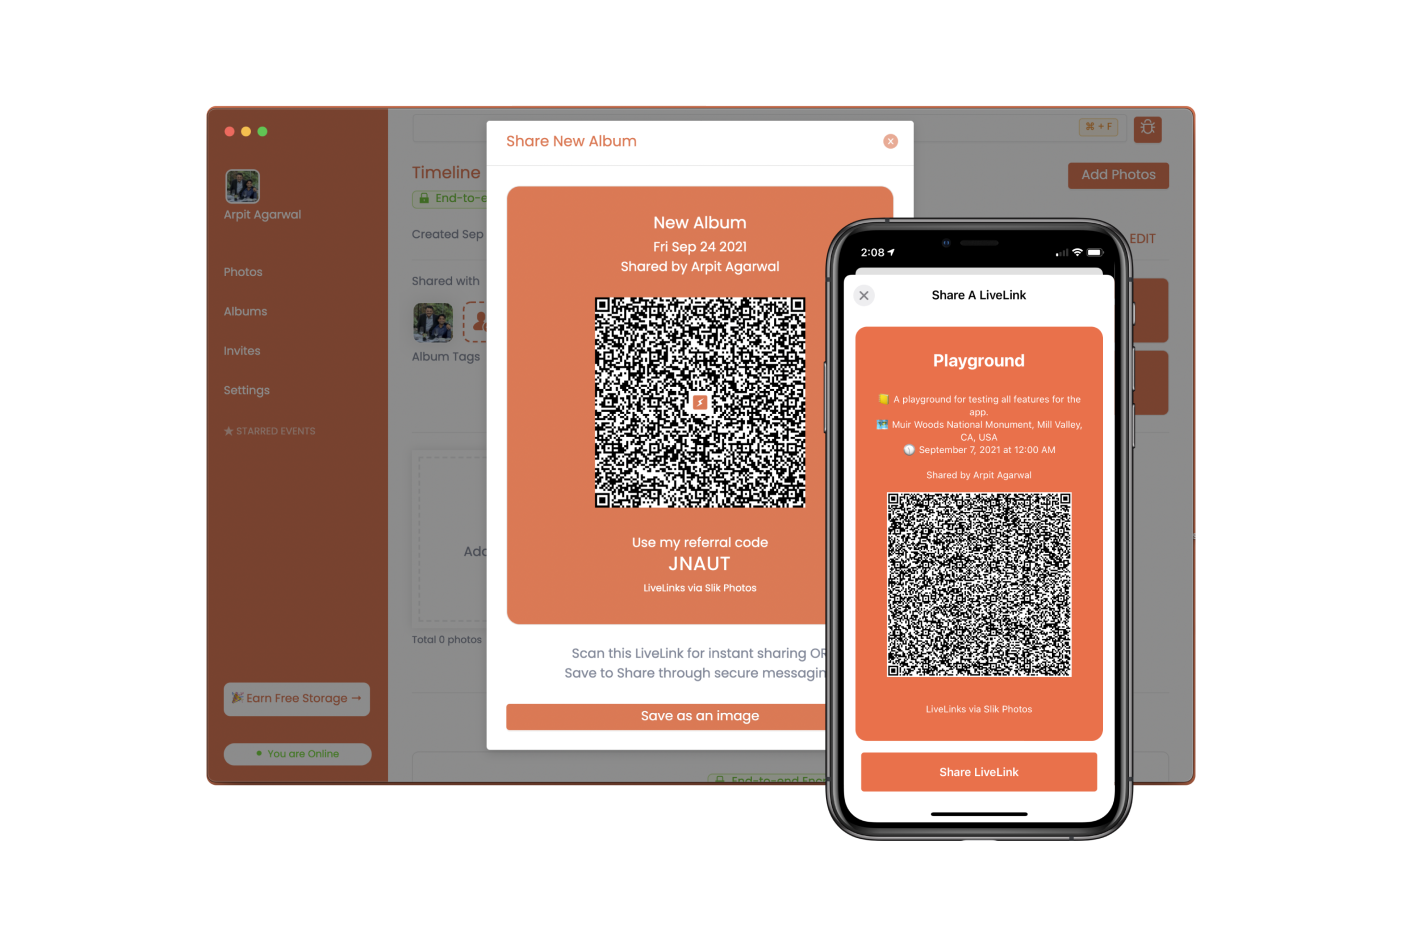 Slik Photos - Easily share photos with friends by simply scanning a QR code. Everything still remains end to end encrypted.